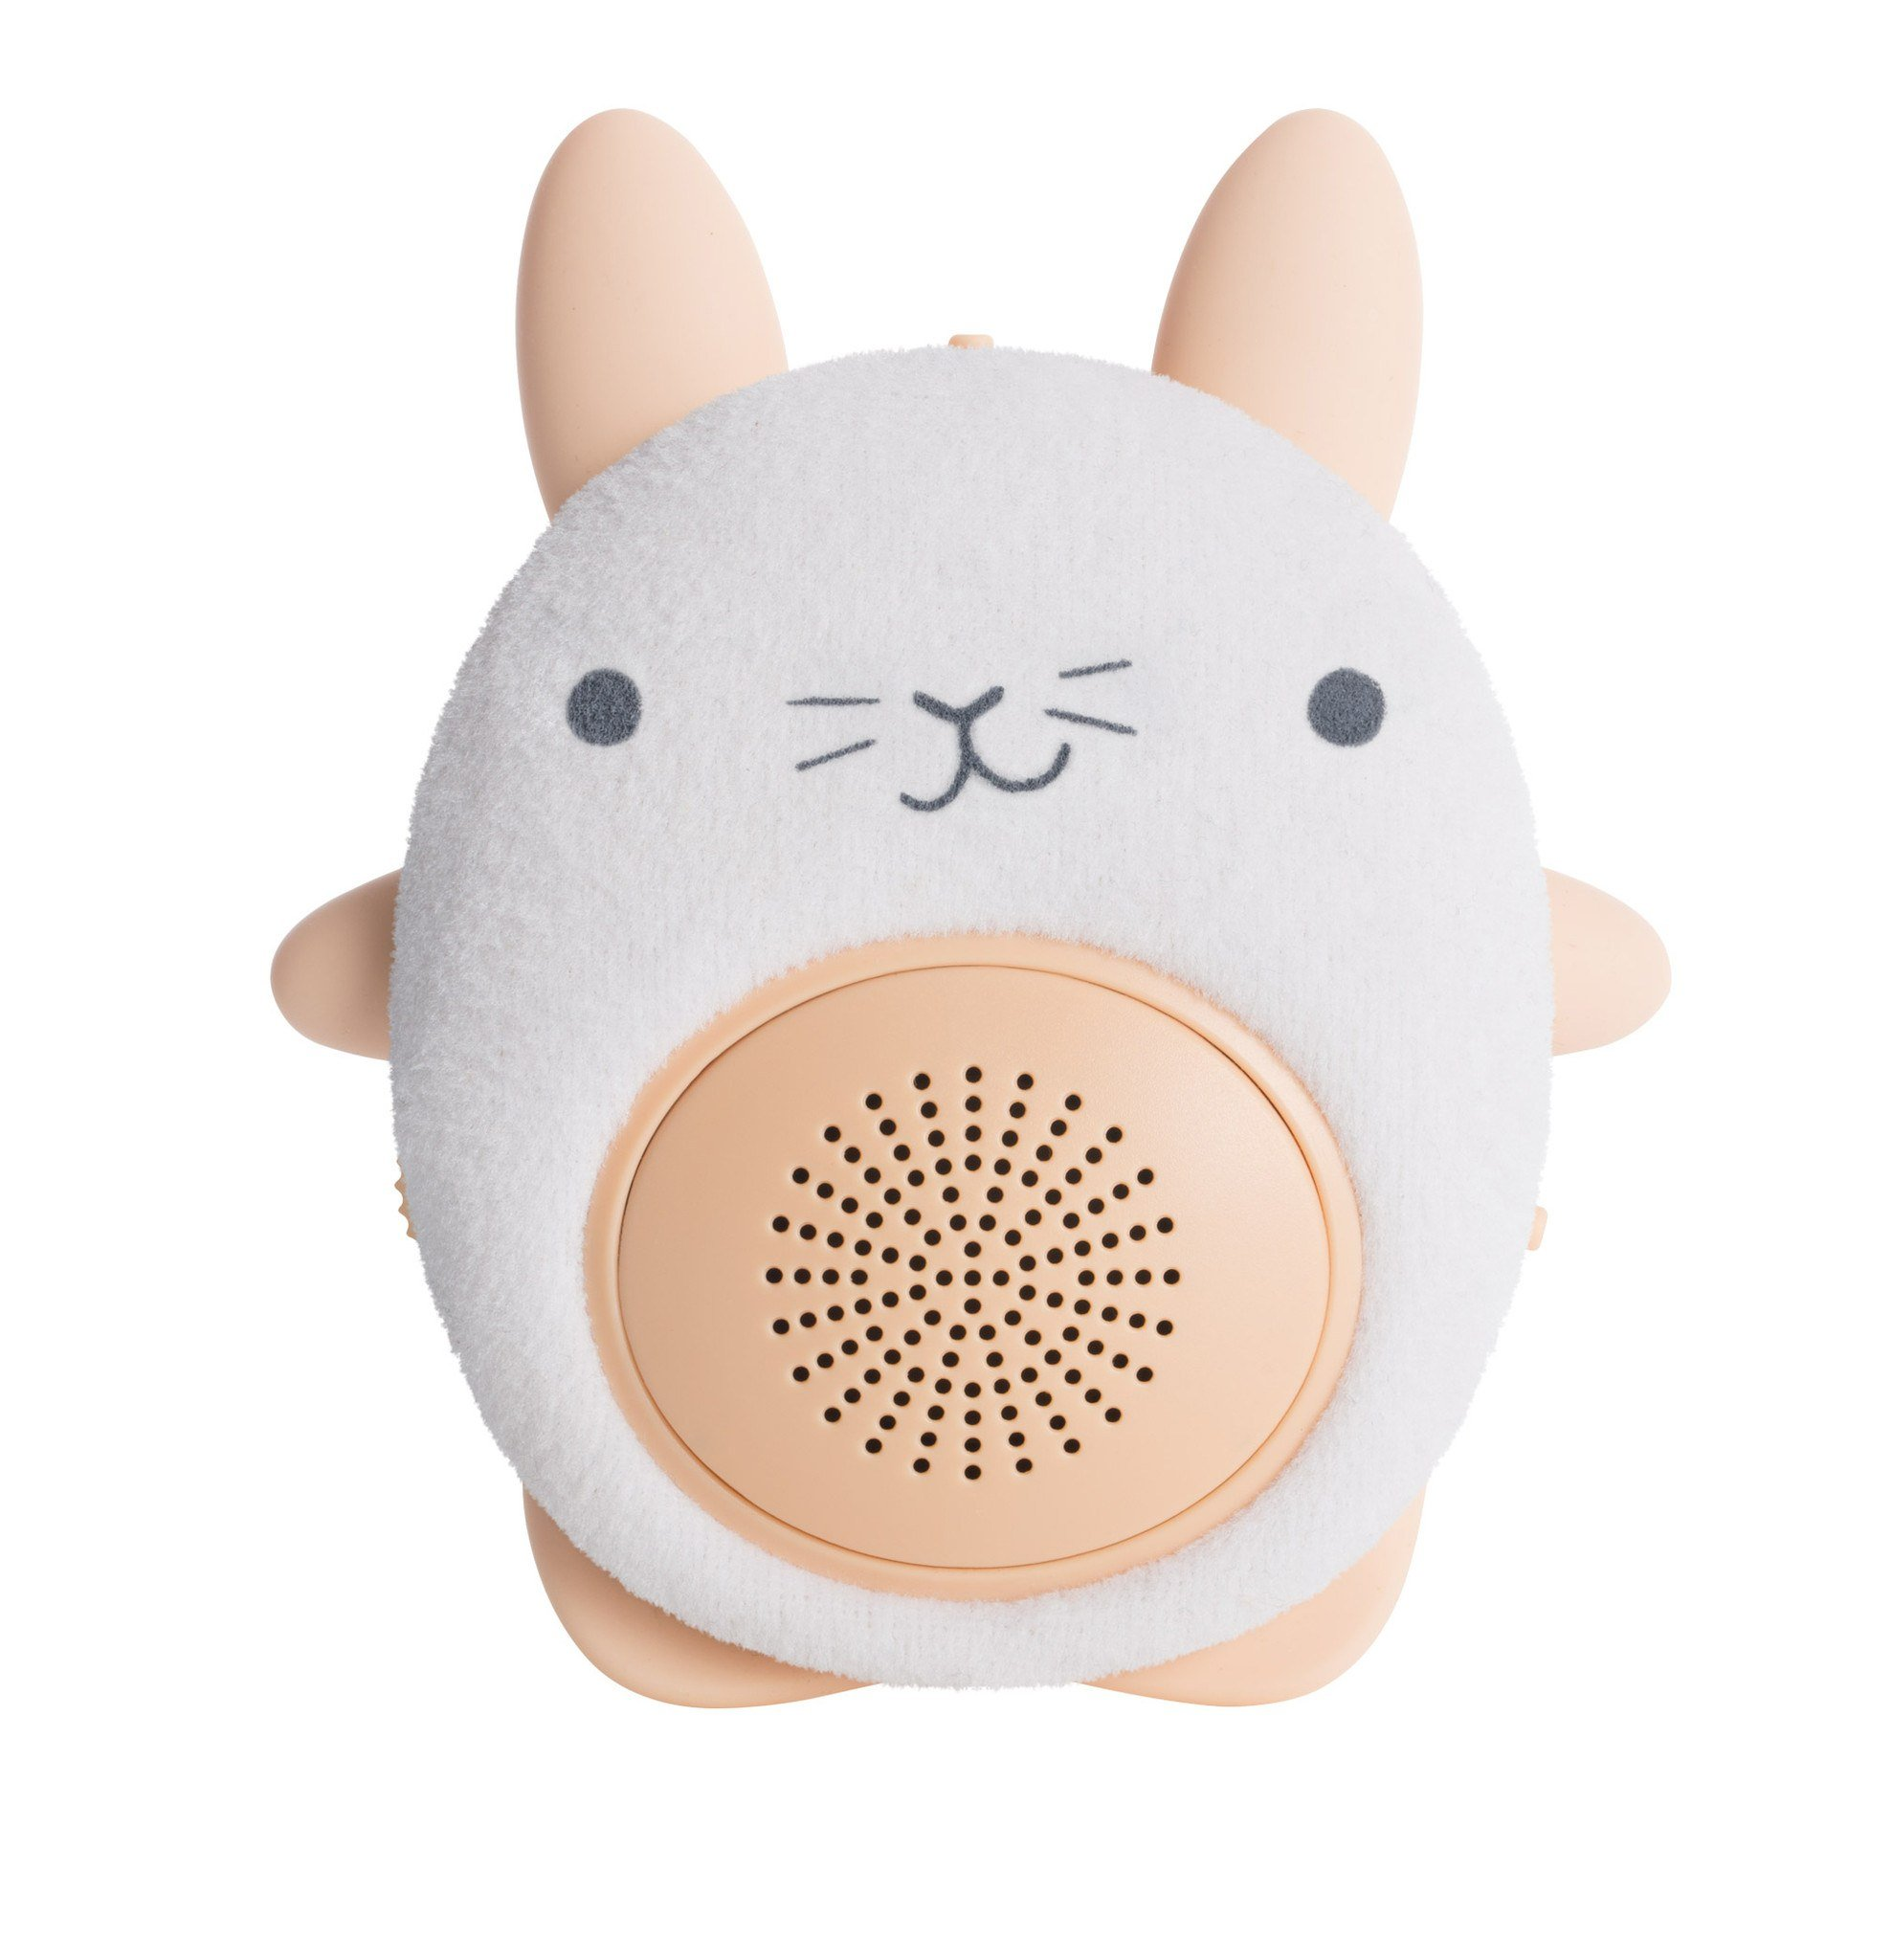 SoundBub by WavHello, White Noise Machine and Bluetooth Speaker, Portable and Rechargeable Baby Sleep Sound Soother | Bella the Bunny, White